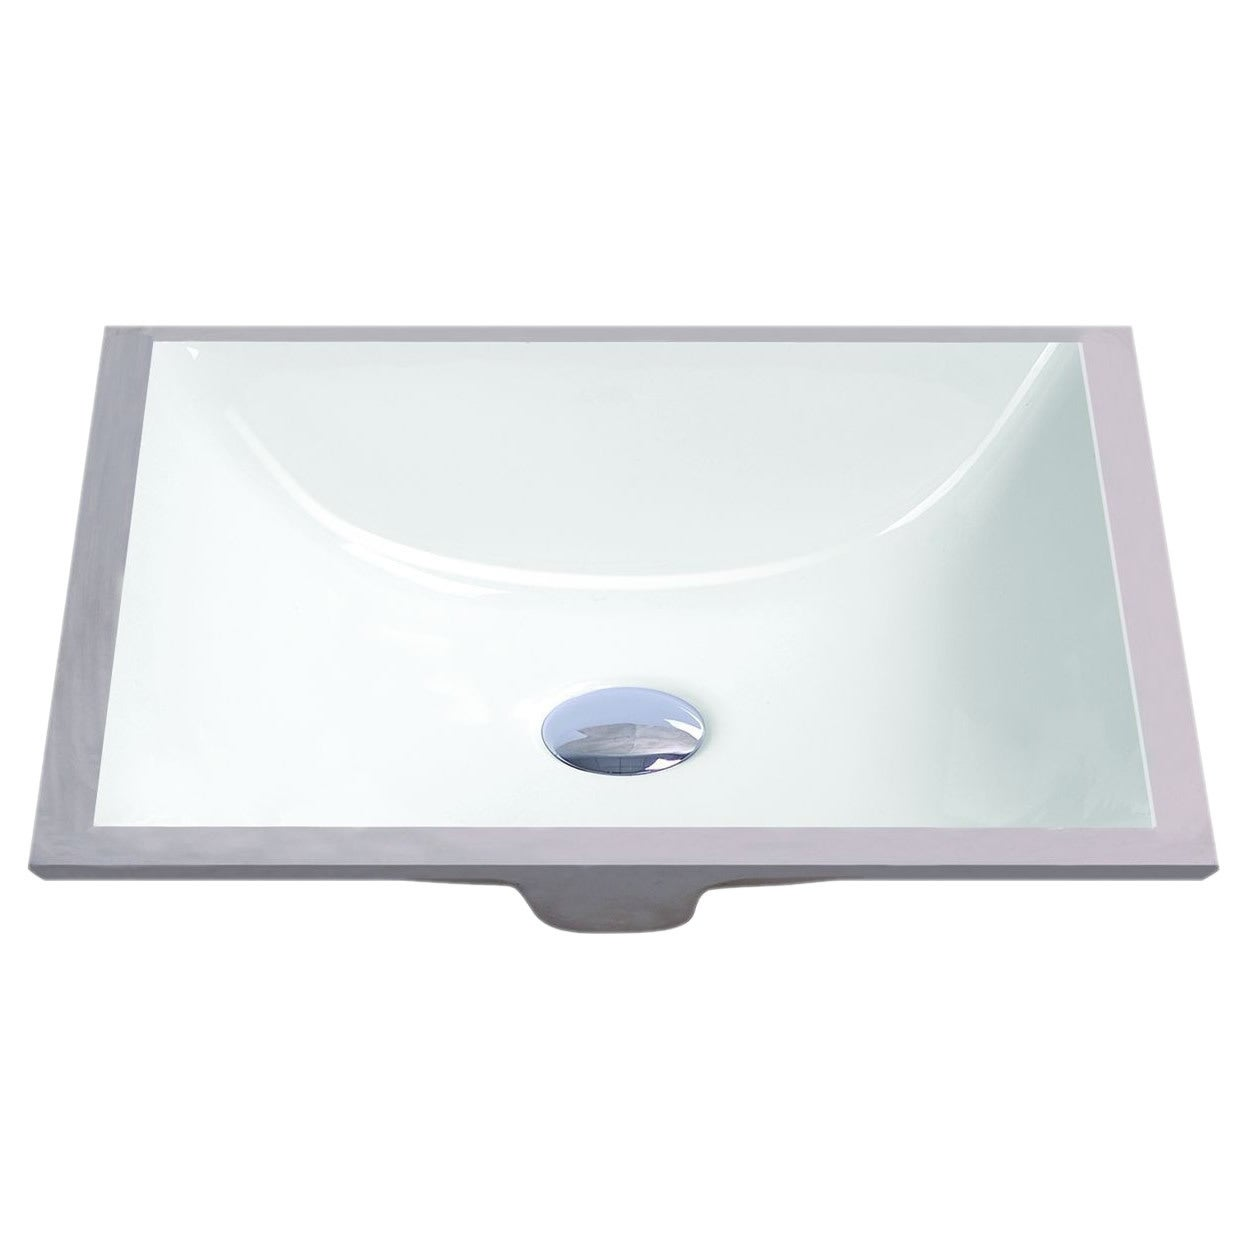 Shop ticor white vitreous porcelain undermount bathroom sink free shipping today overstock com 8822324